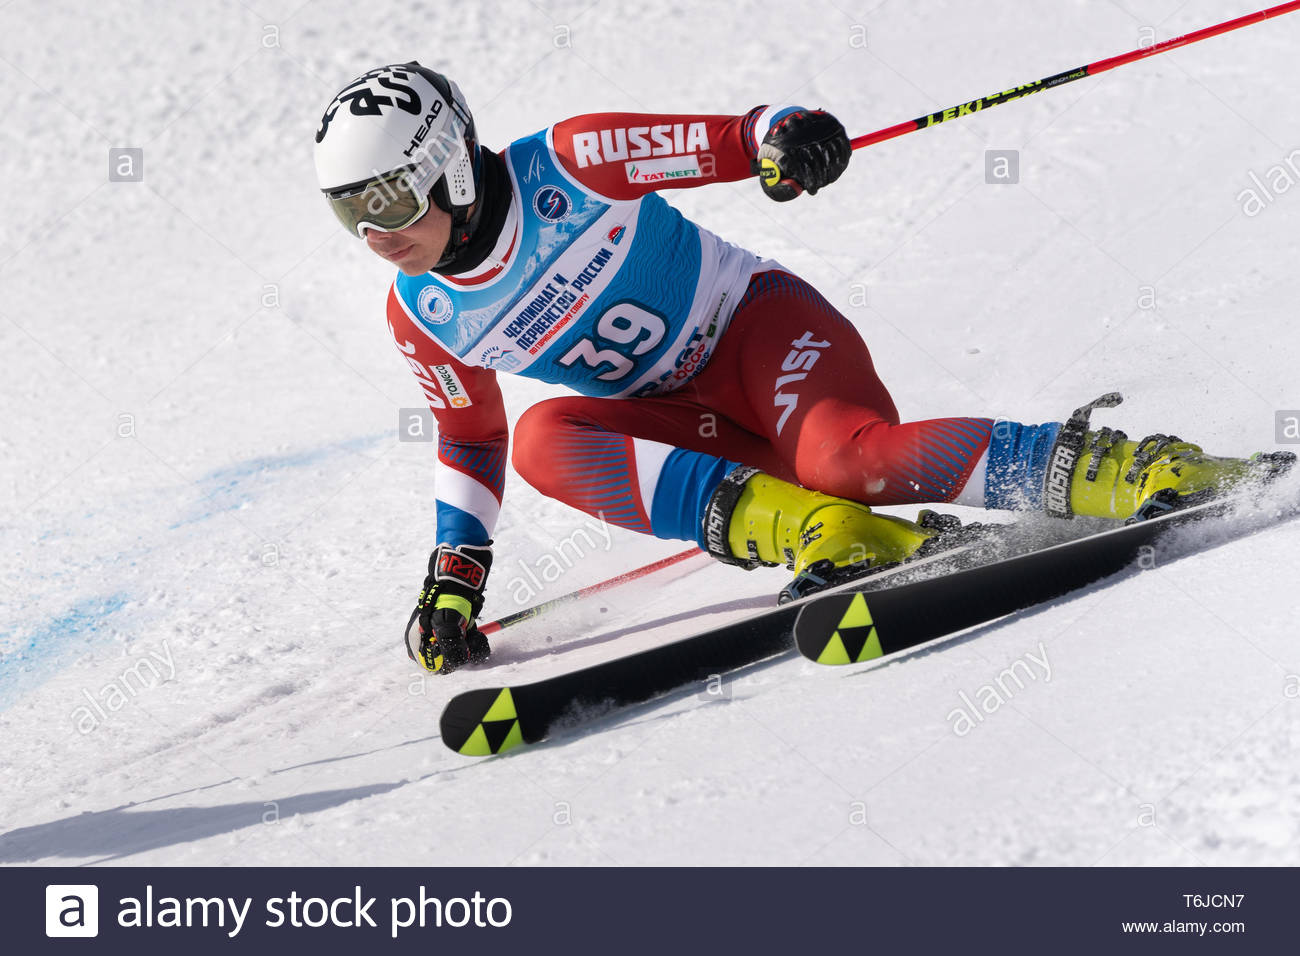 KAMCHATKA PENINSULA, RUSSIA - APR 1, 2019: Mountain skier Popov Nikolay (Sverdlovsk Region) skiing down mount. Russian Alpine Skiing Cup, Internationa - Stock Image